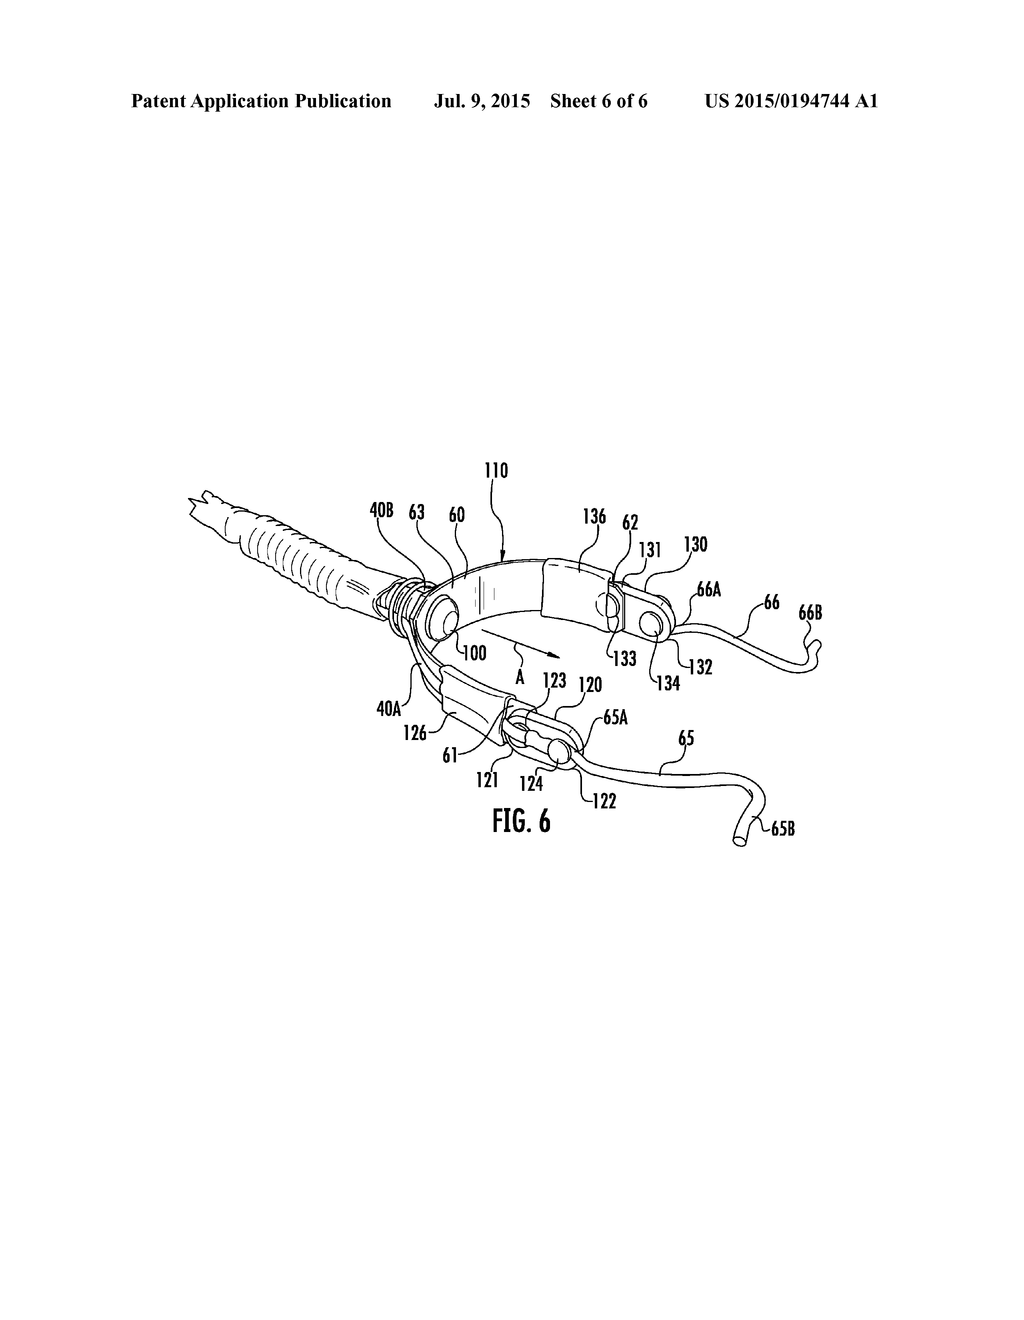 hight resolution of tattooing apparatus and clip cord assembly for electrically connecting a power supply to a tattoo machine diagram schematic and image 07